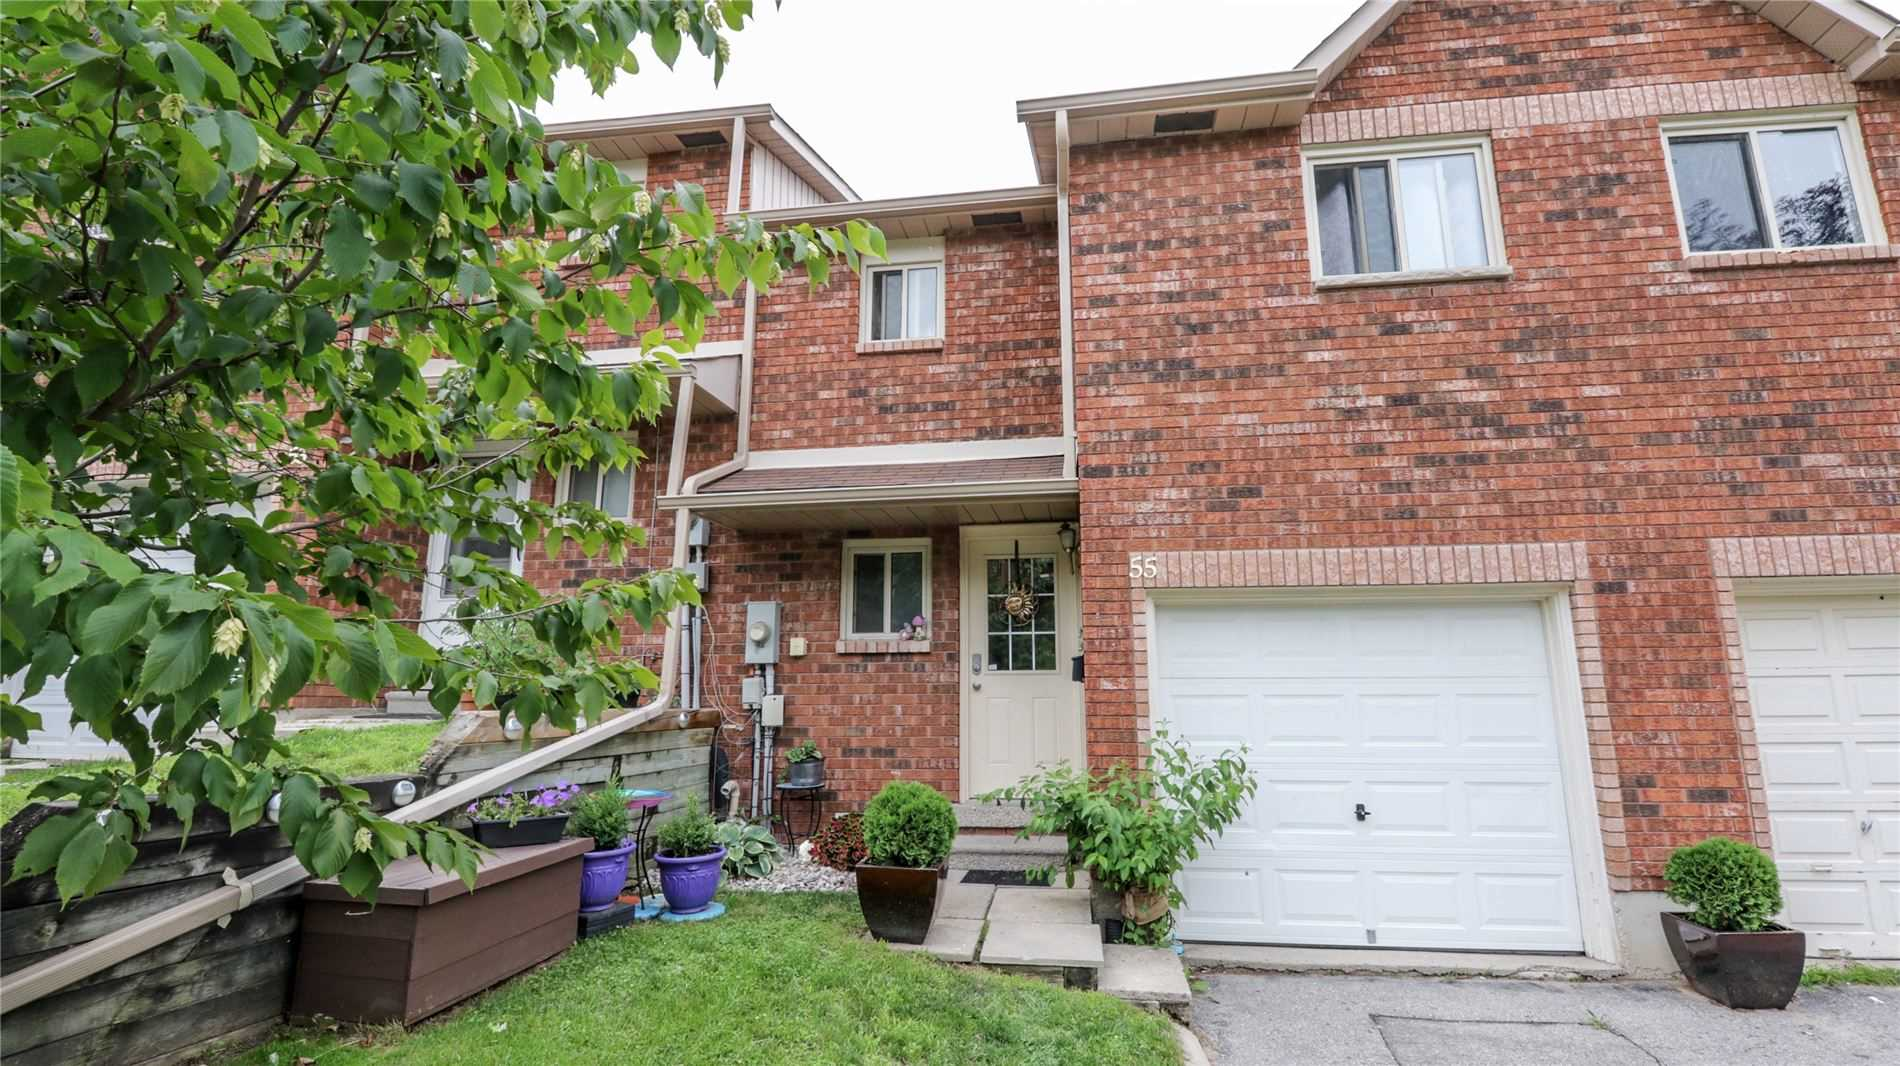 Condo Townhouse For Sale In Barrie , 3 Bedrooms Bedrooms, ,3 BathroomsBathrooms,Condo Townhouse,For Sale,Loggers Run